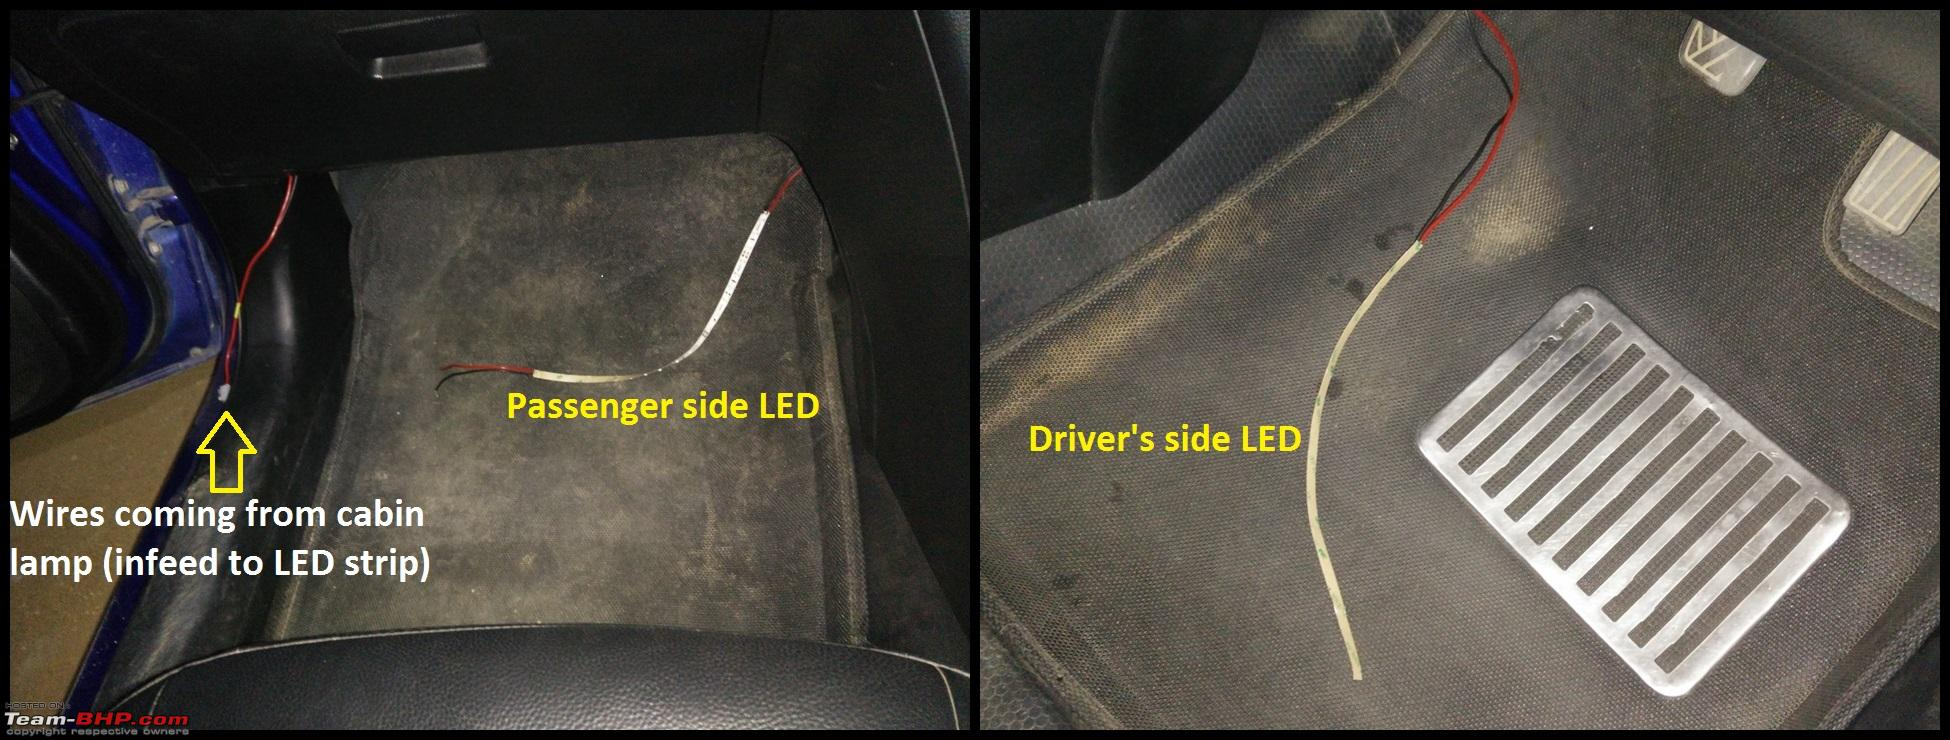 hight resolution of d i y install led footwell lighting 11 led strips kept